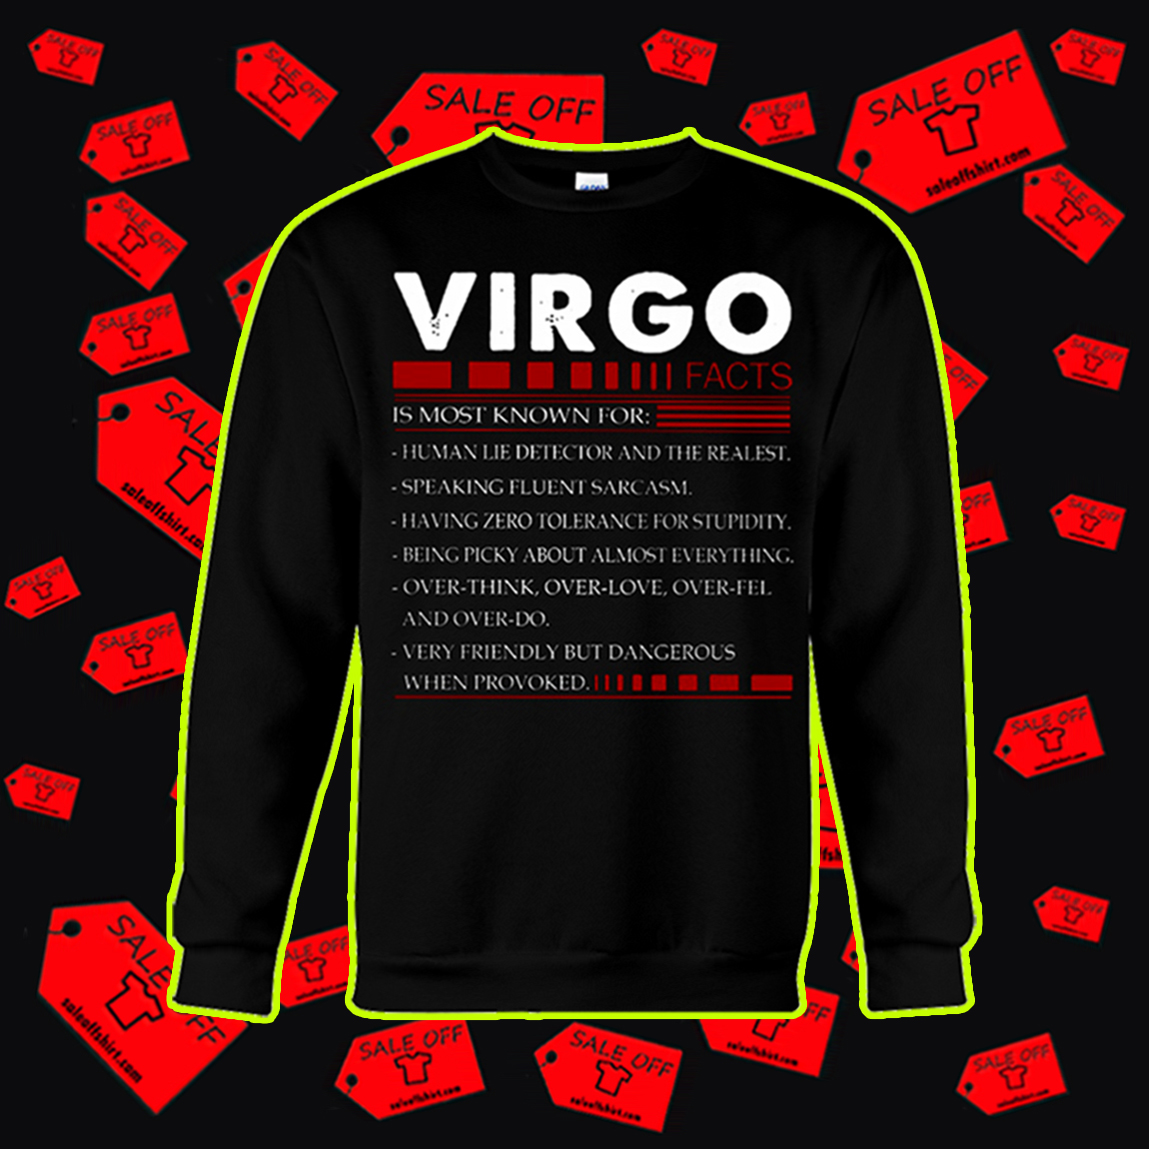 Virgo facts is most known for sweatshirt